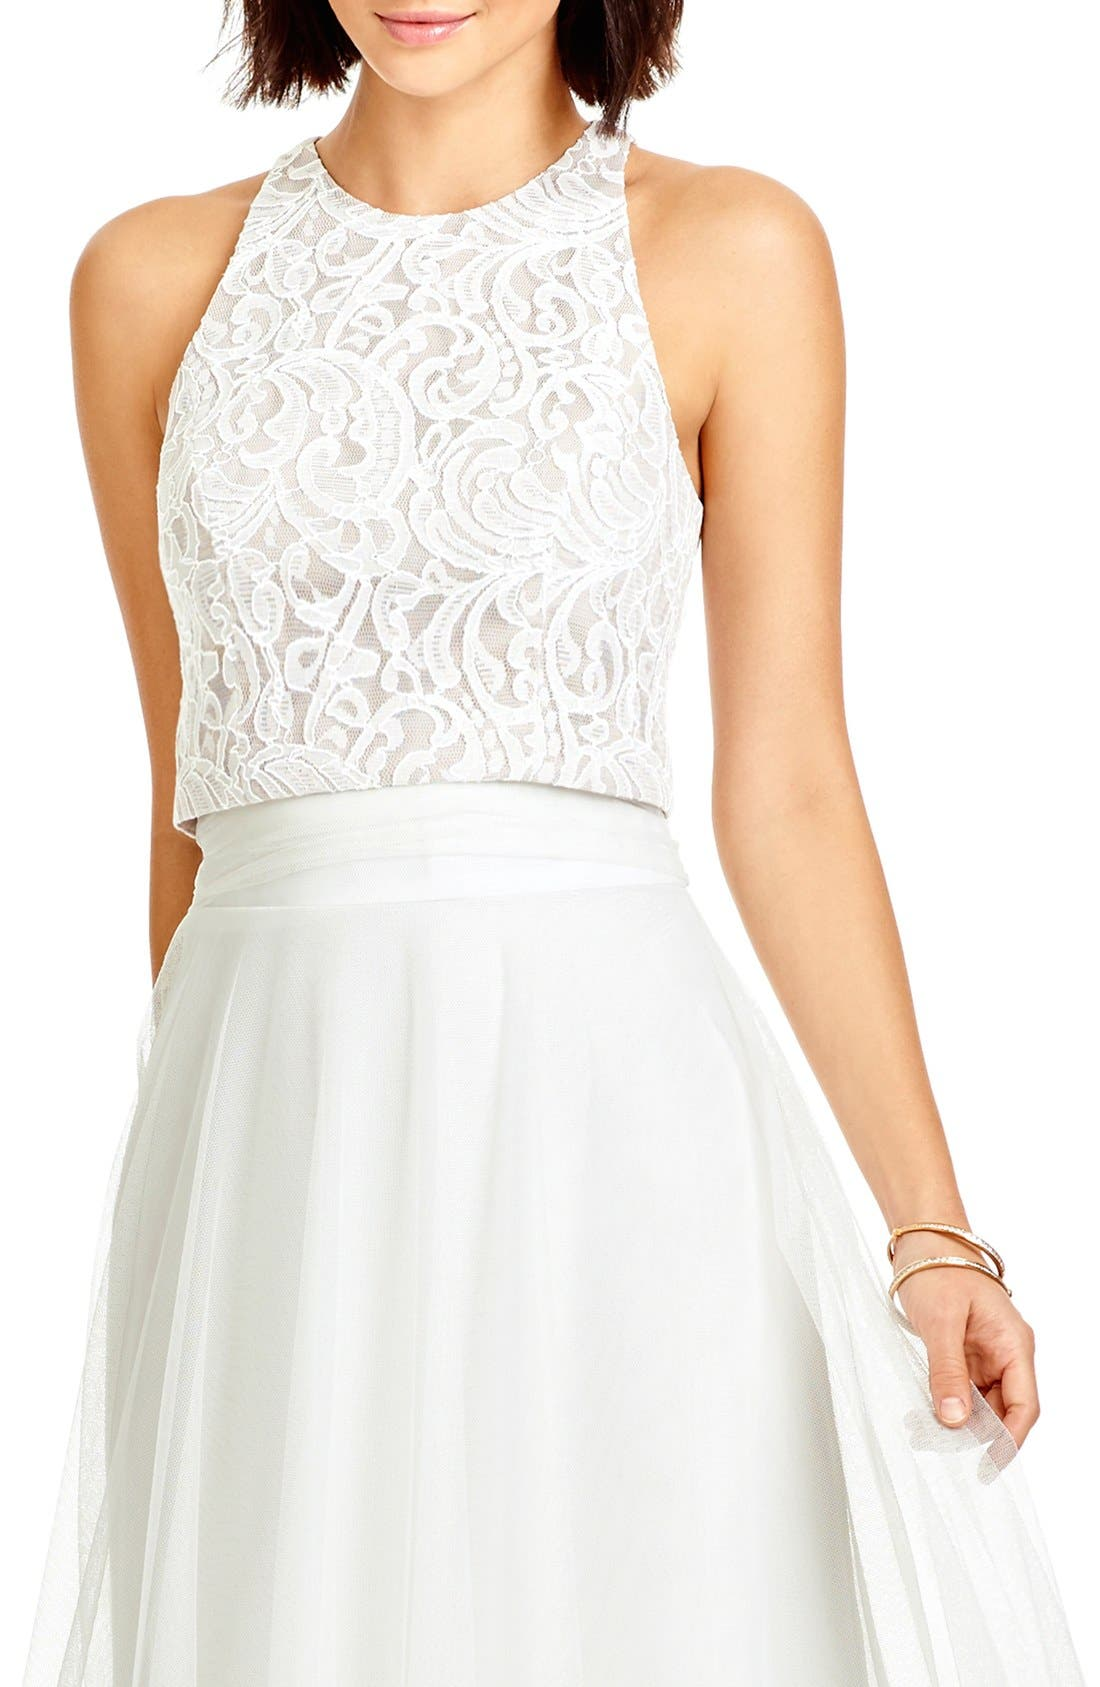 Lace Halter Style Crop Top,                             Alternate thumbnail 5, color,                             IVORY LACE/ TOPAZ/ IVORY